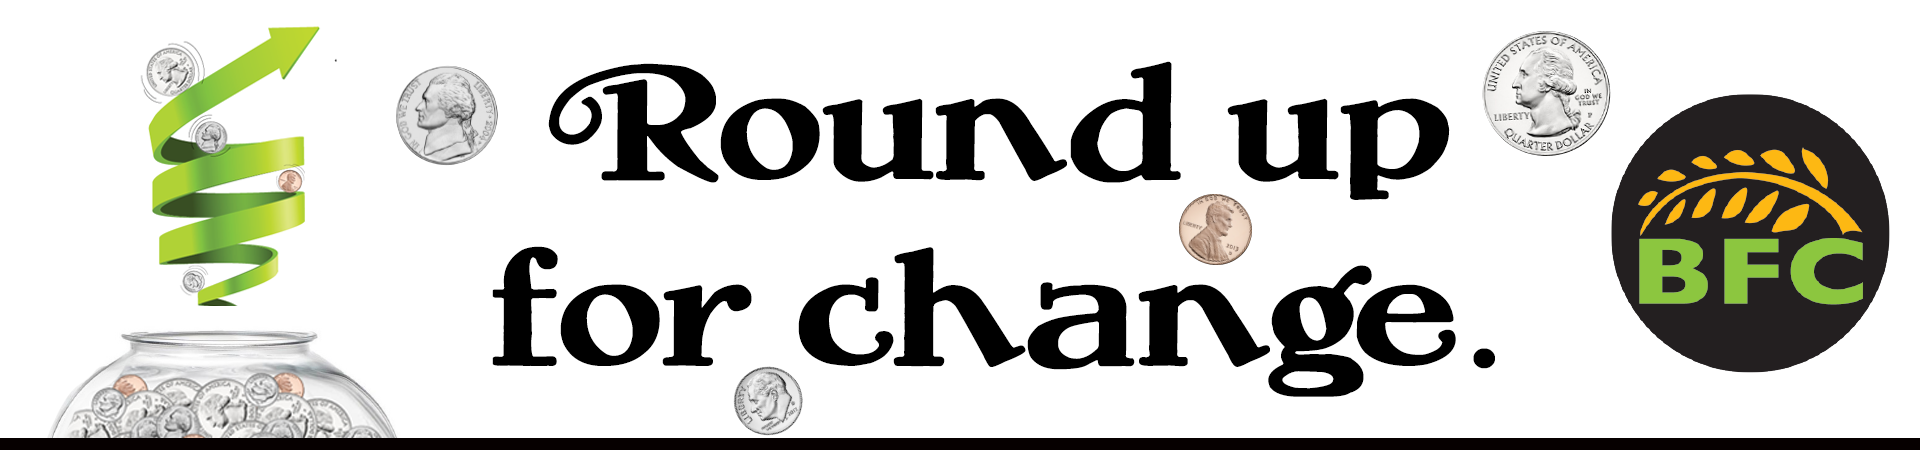 Round up For Change Donation Program